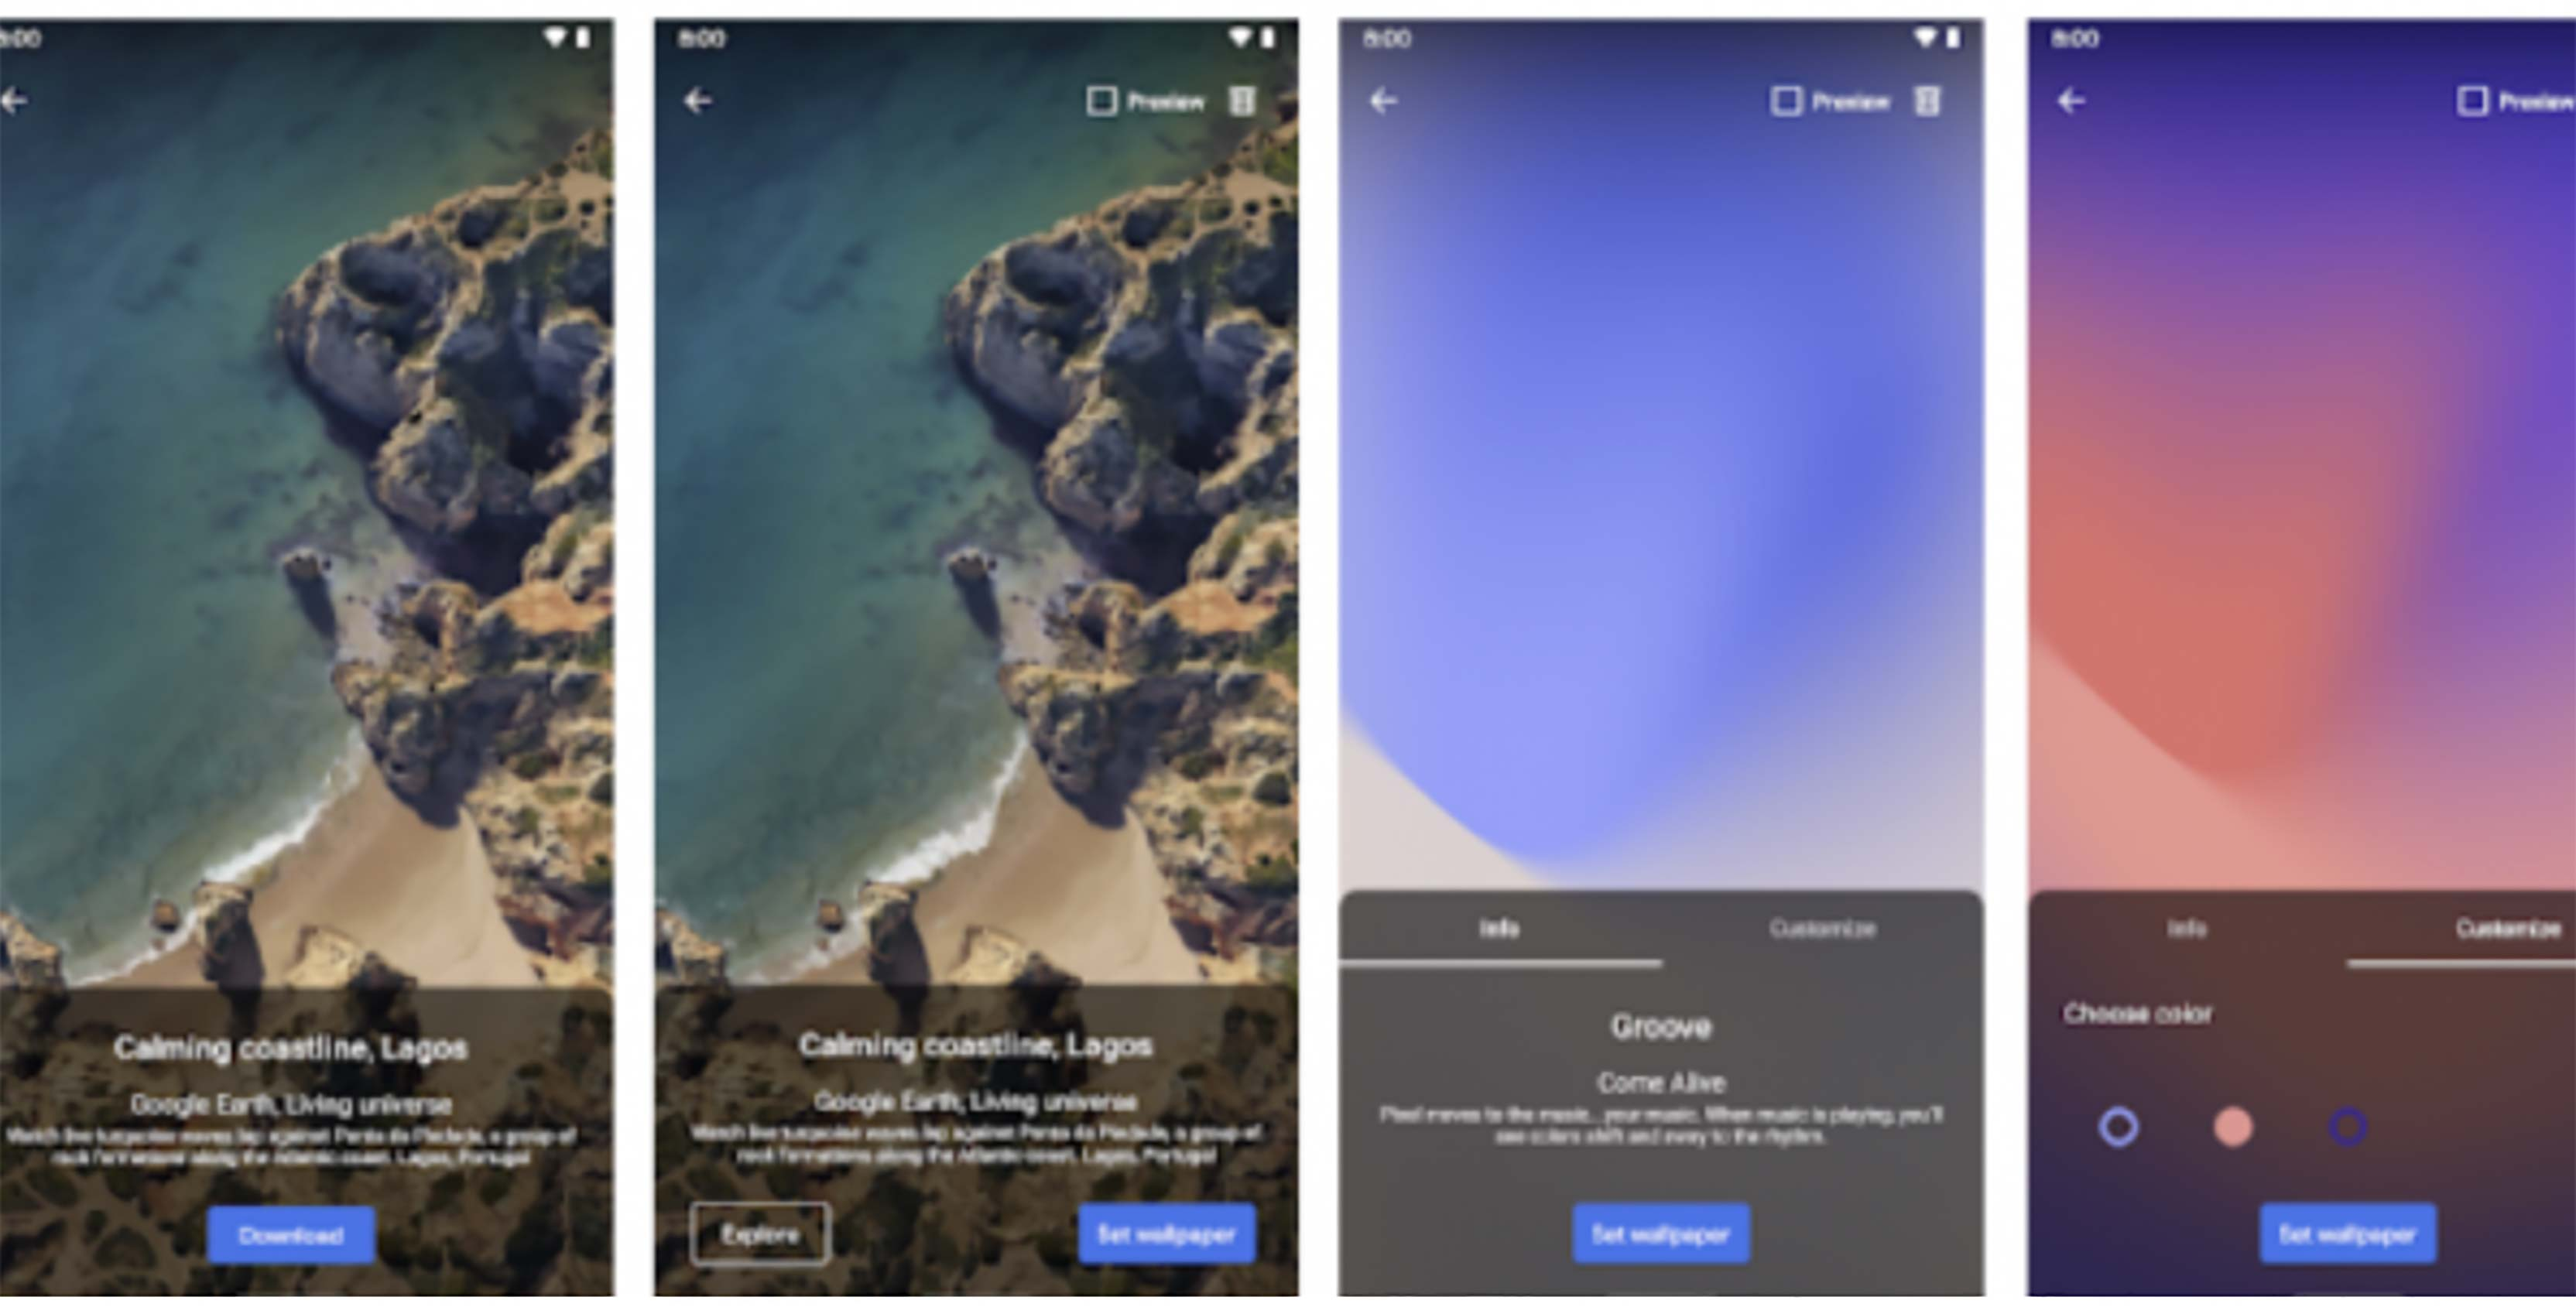 Googles Pixel Live Wallpaper App Launches On The Play Store